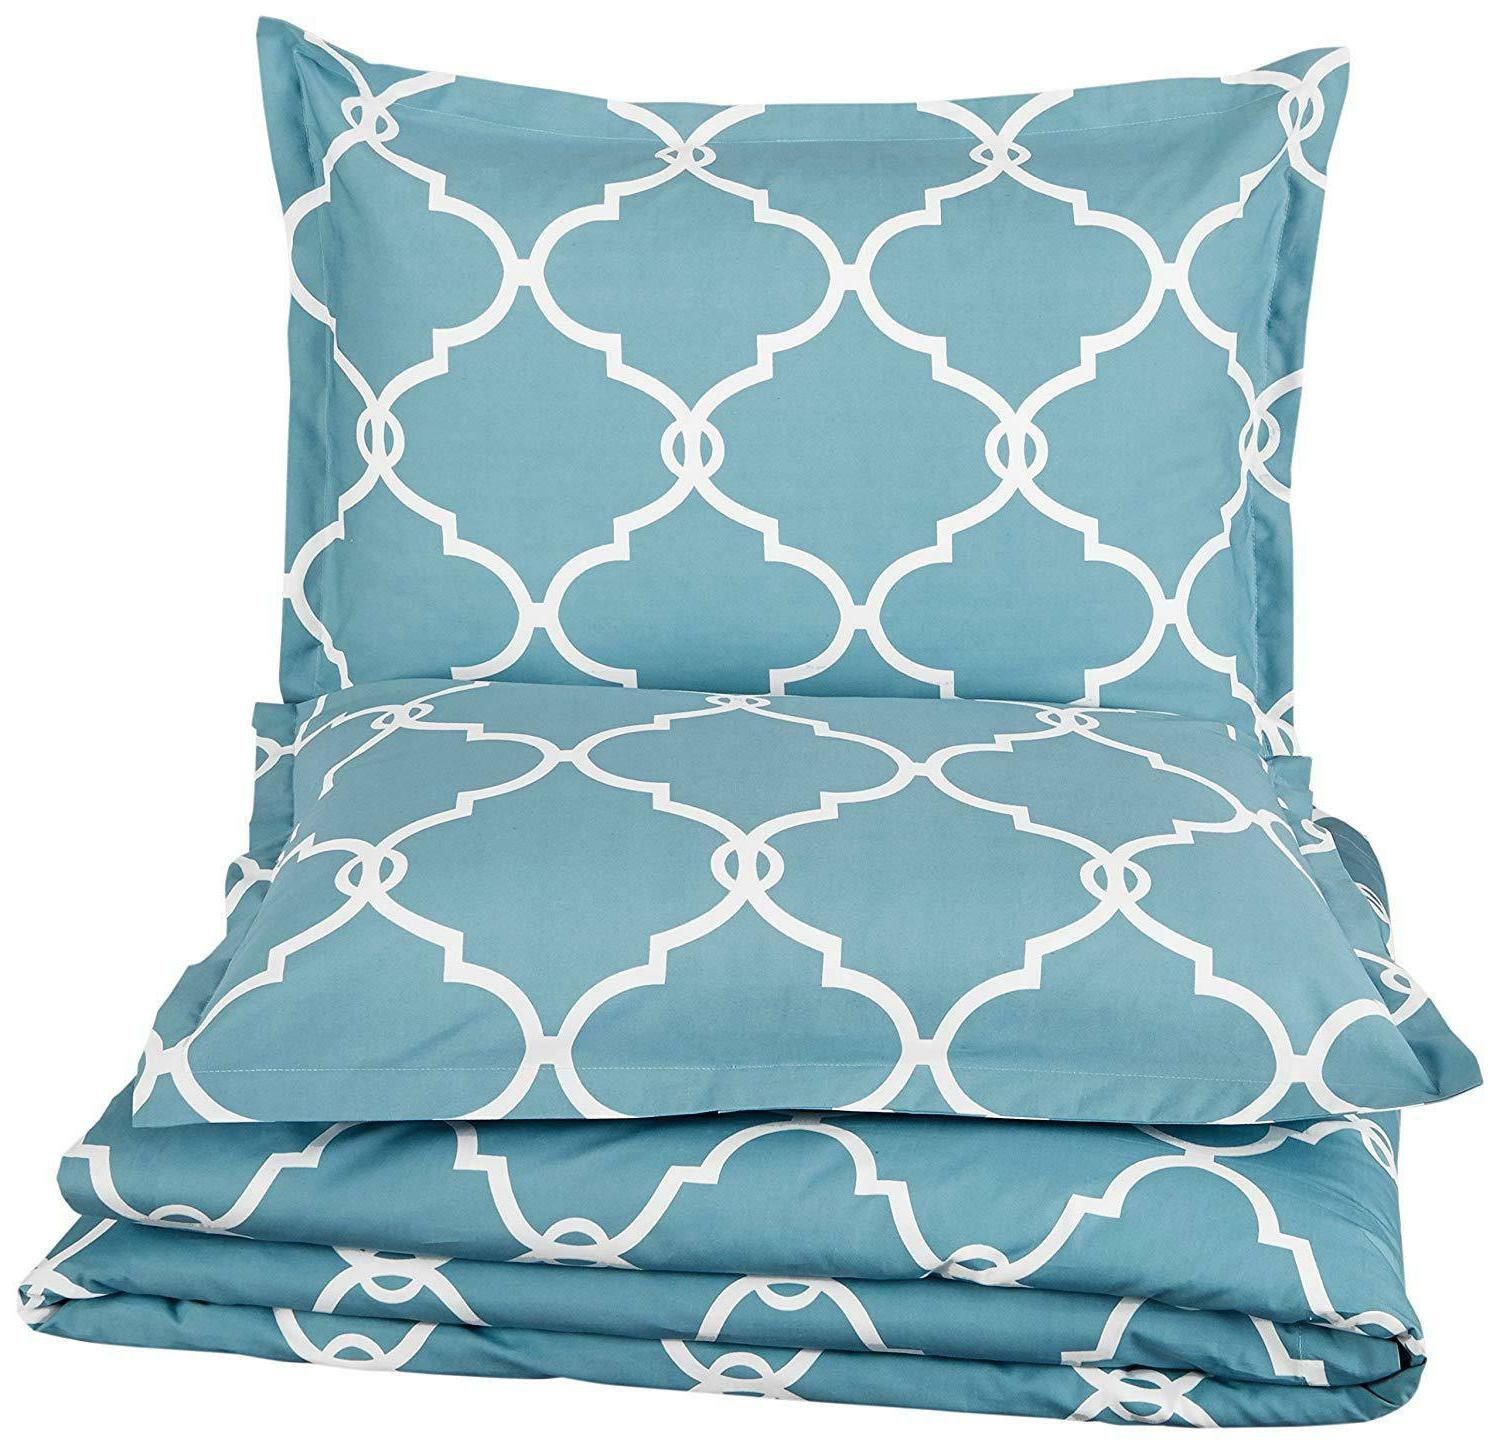 Pinzon Cool Percale Duvet Set,